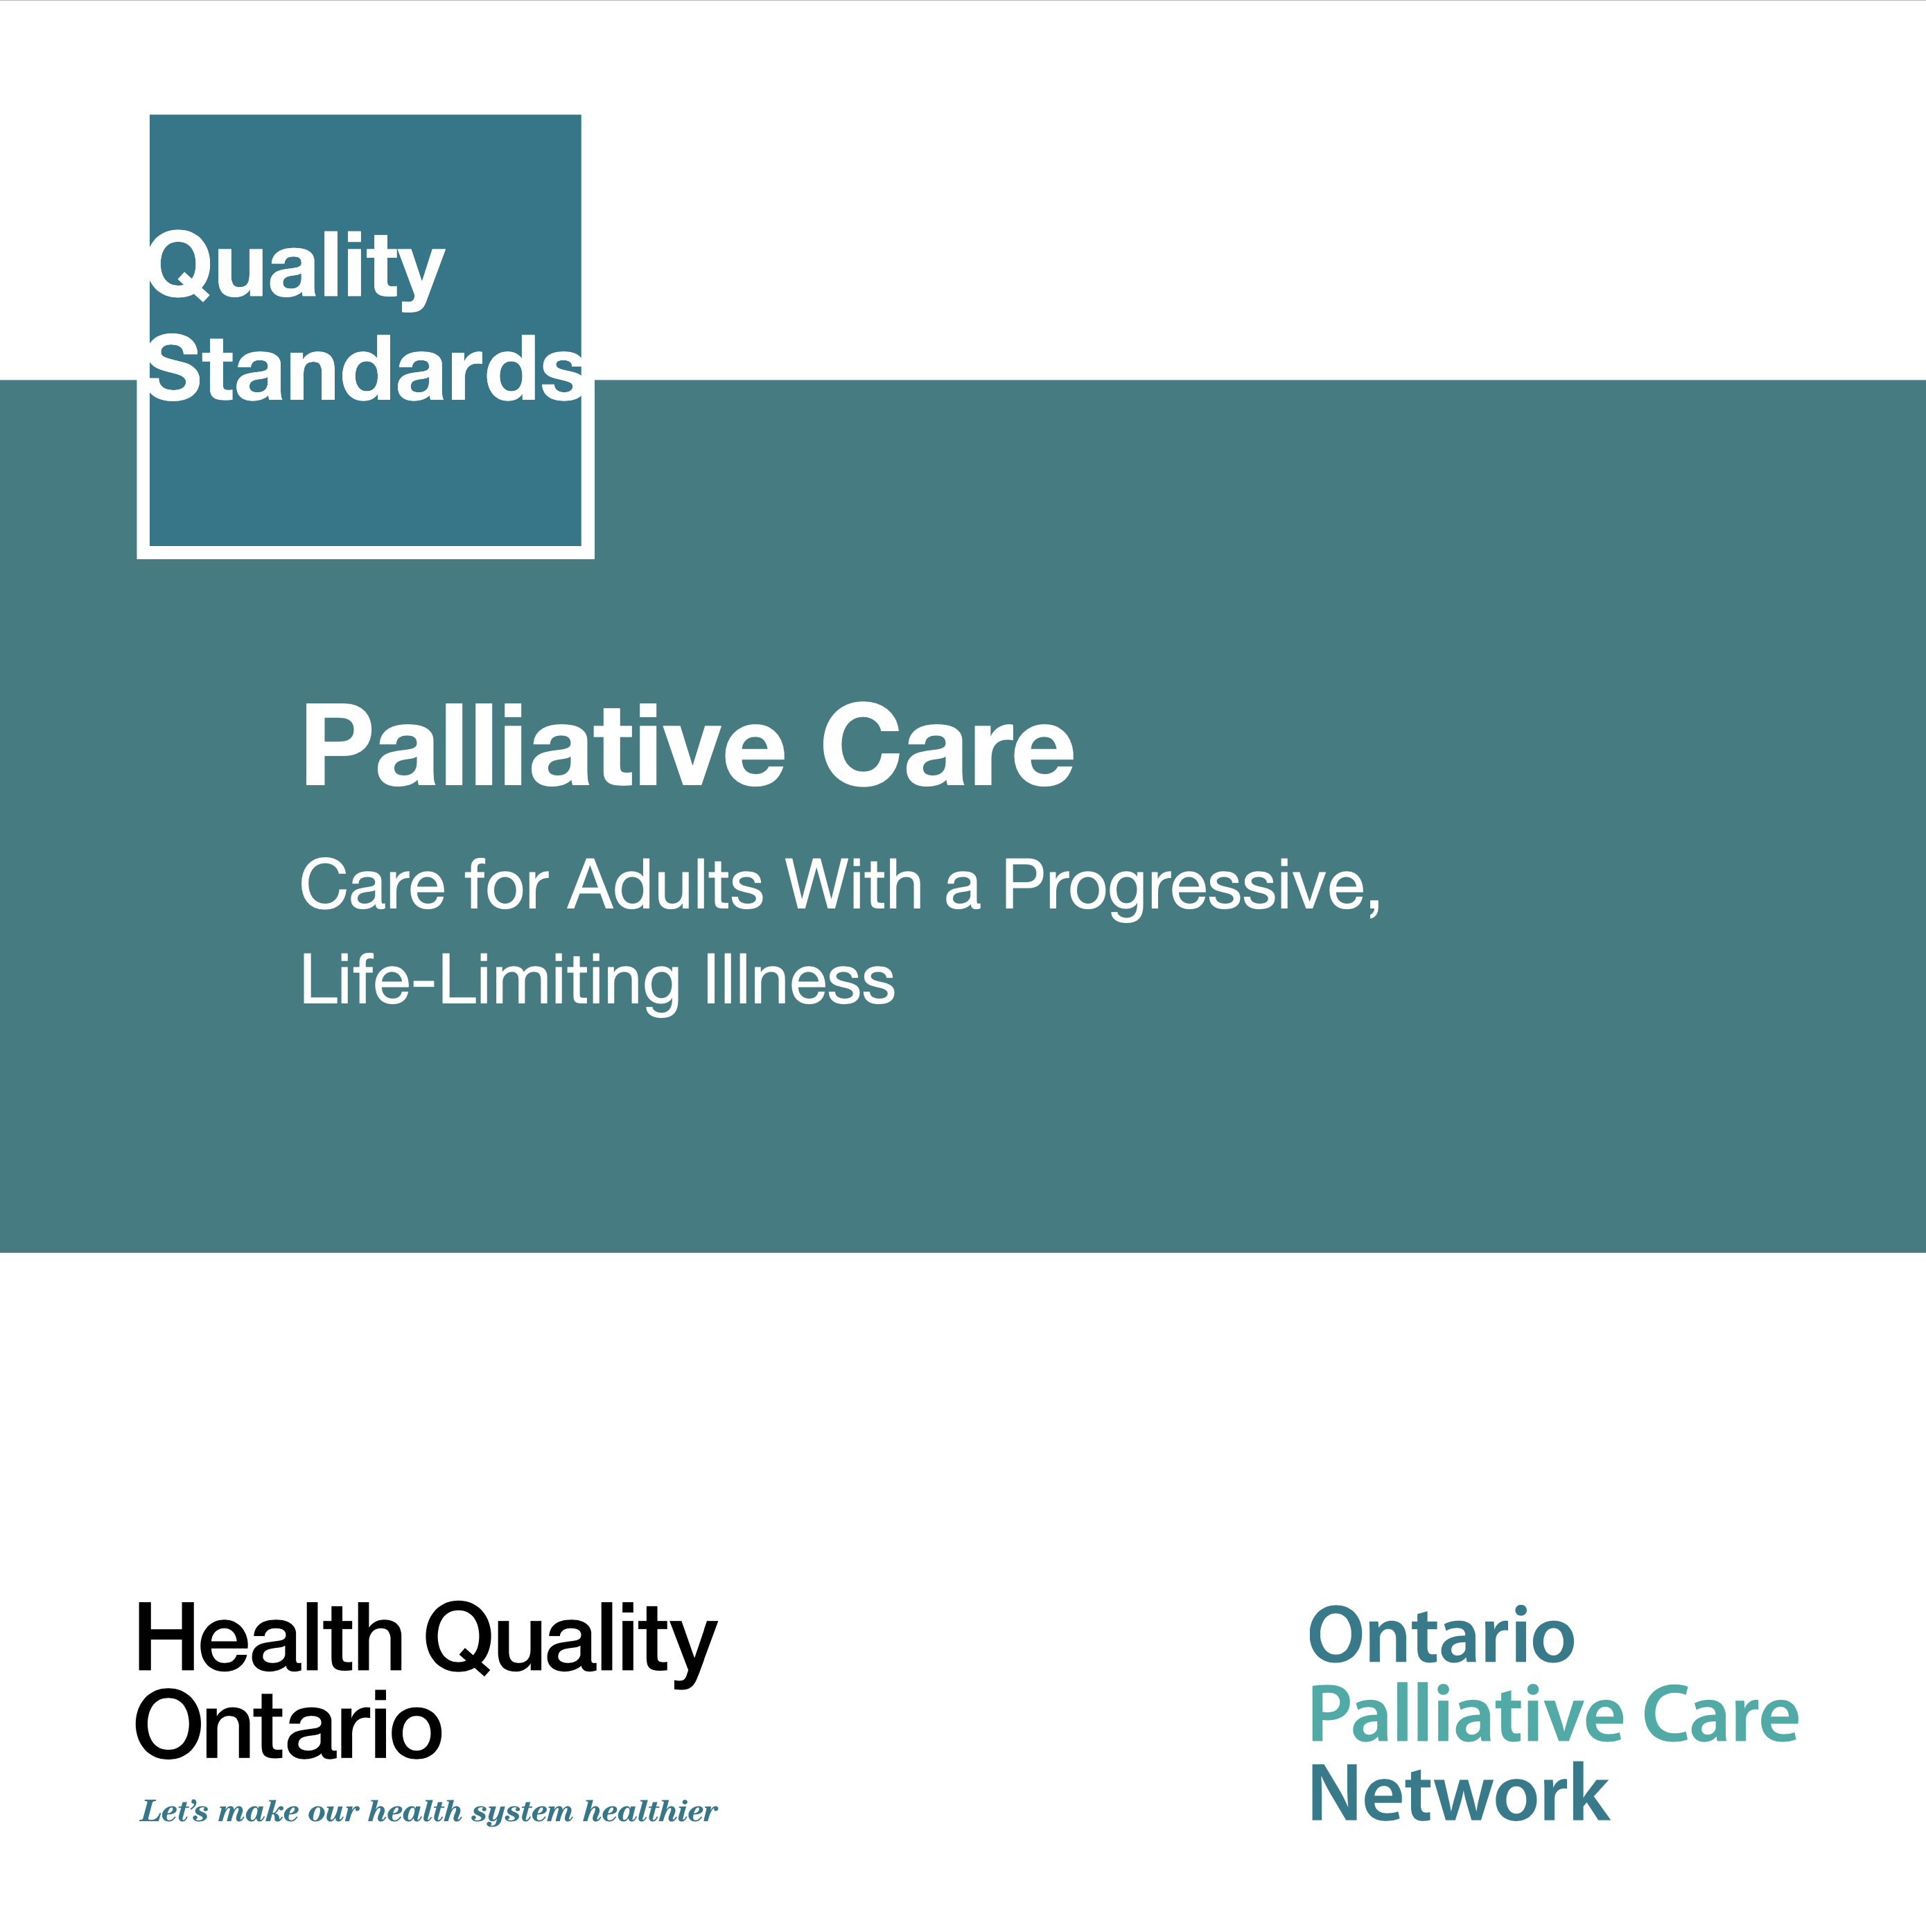 Palliative Care at End of Life Quality Standards - Health Quality Ontario (2018)